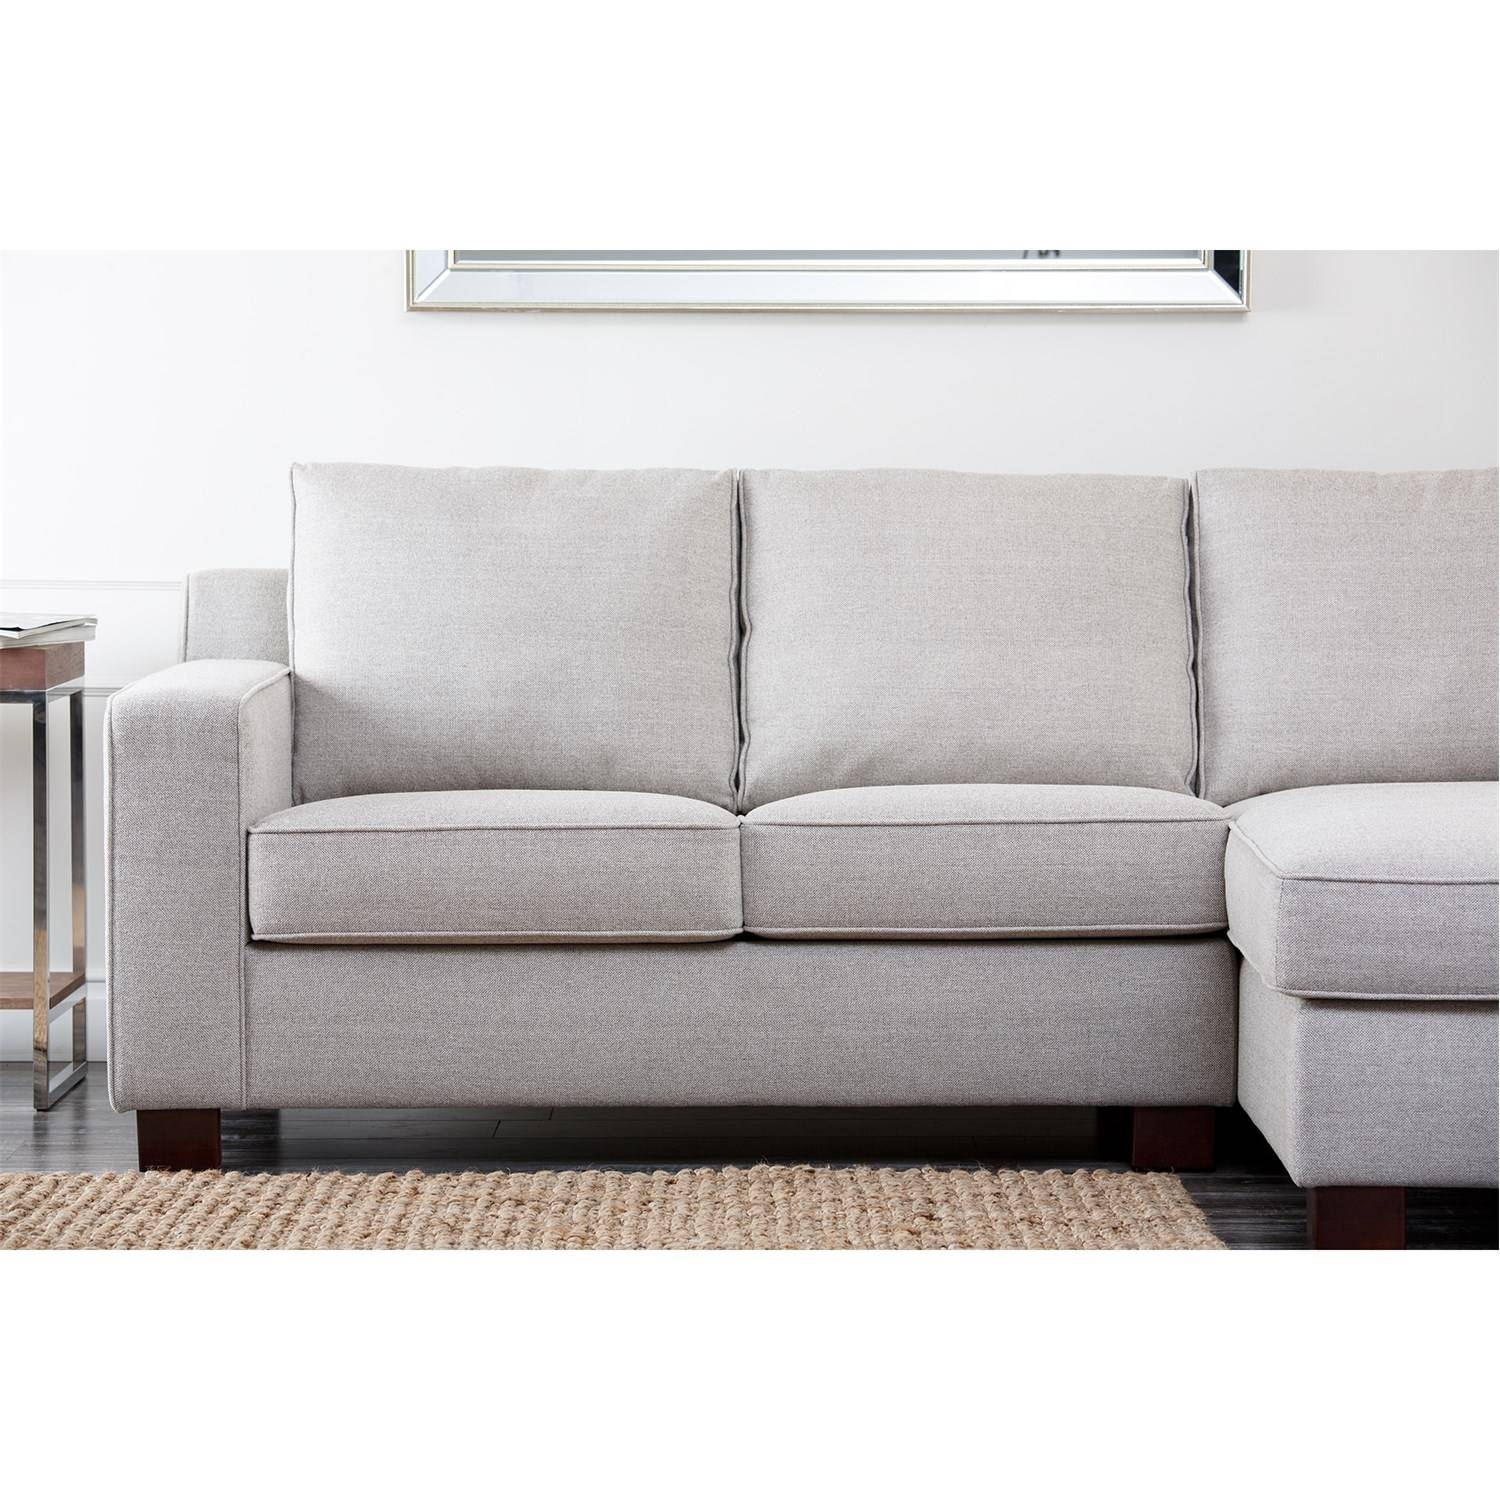 Abbyson Living Rl-1321-Gry Regina Grey Fabric Sectional Sofa inside Abbyson Sectional Sofa (Image 8 of 30)